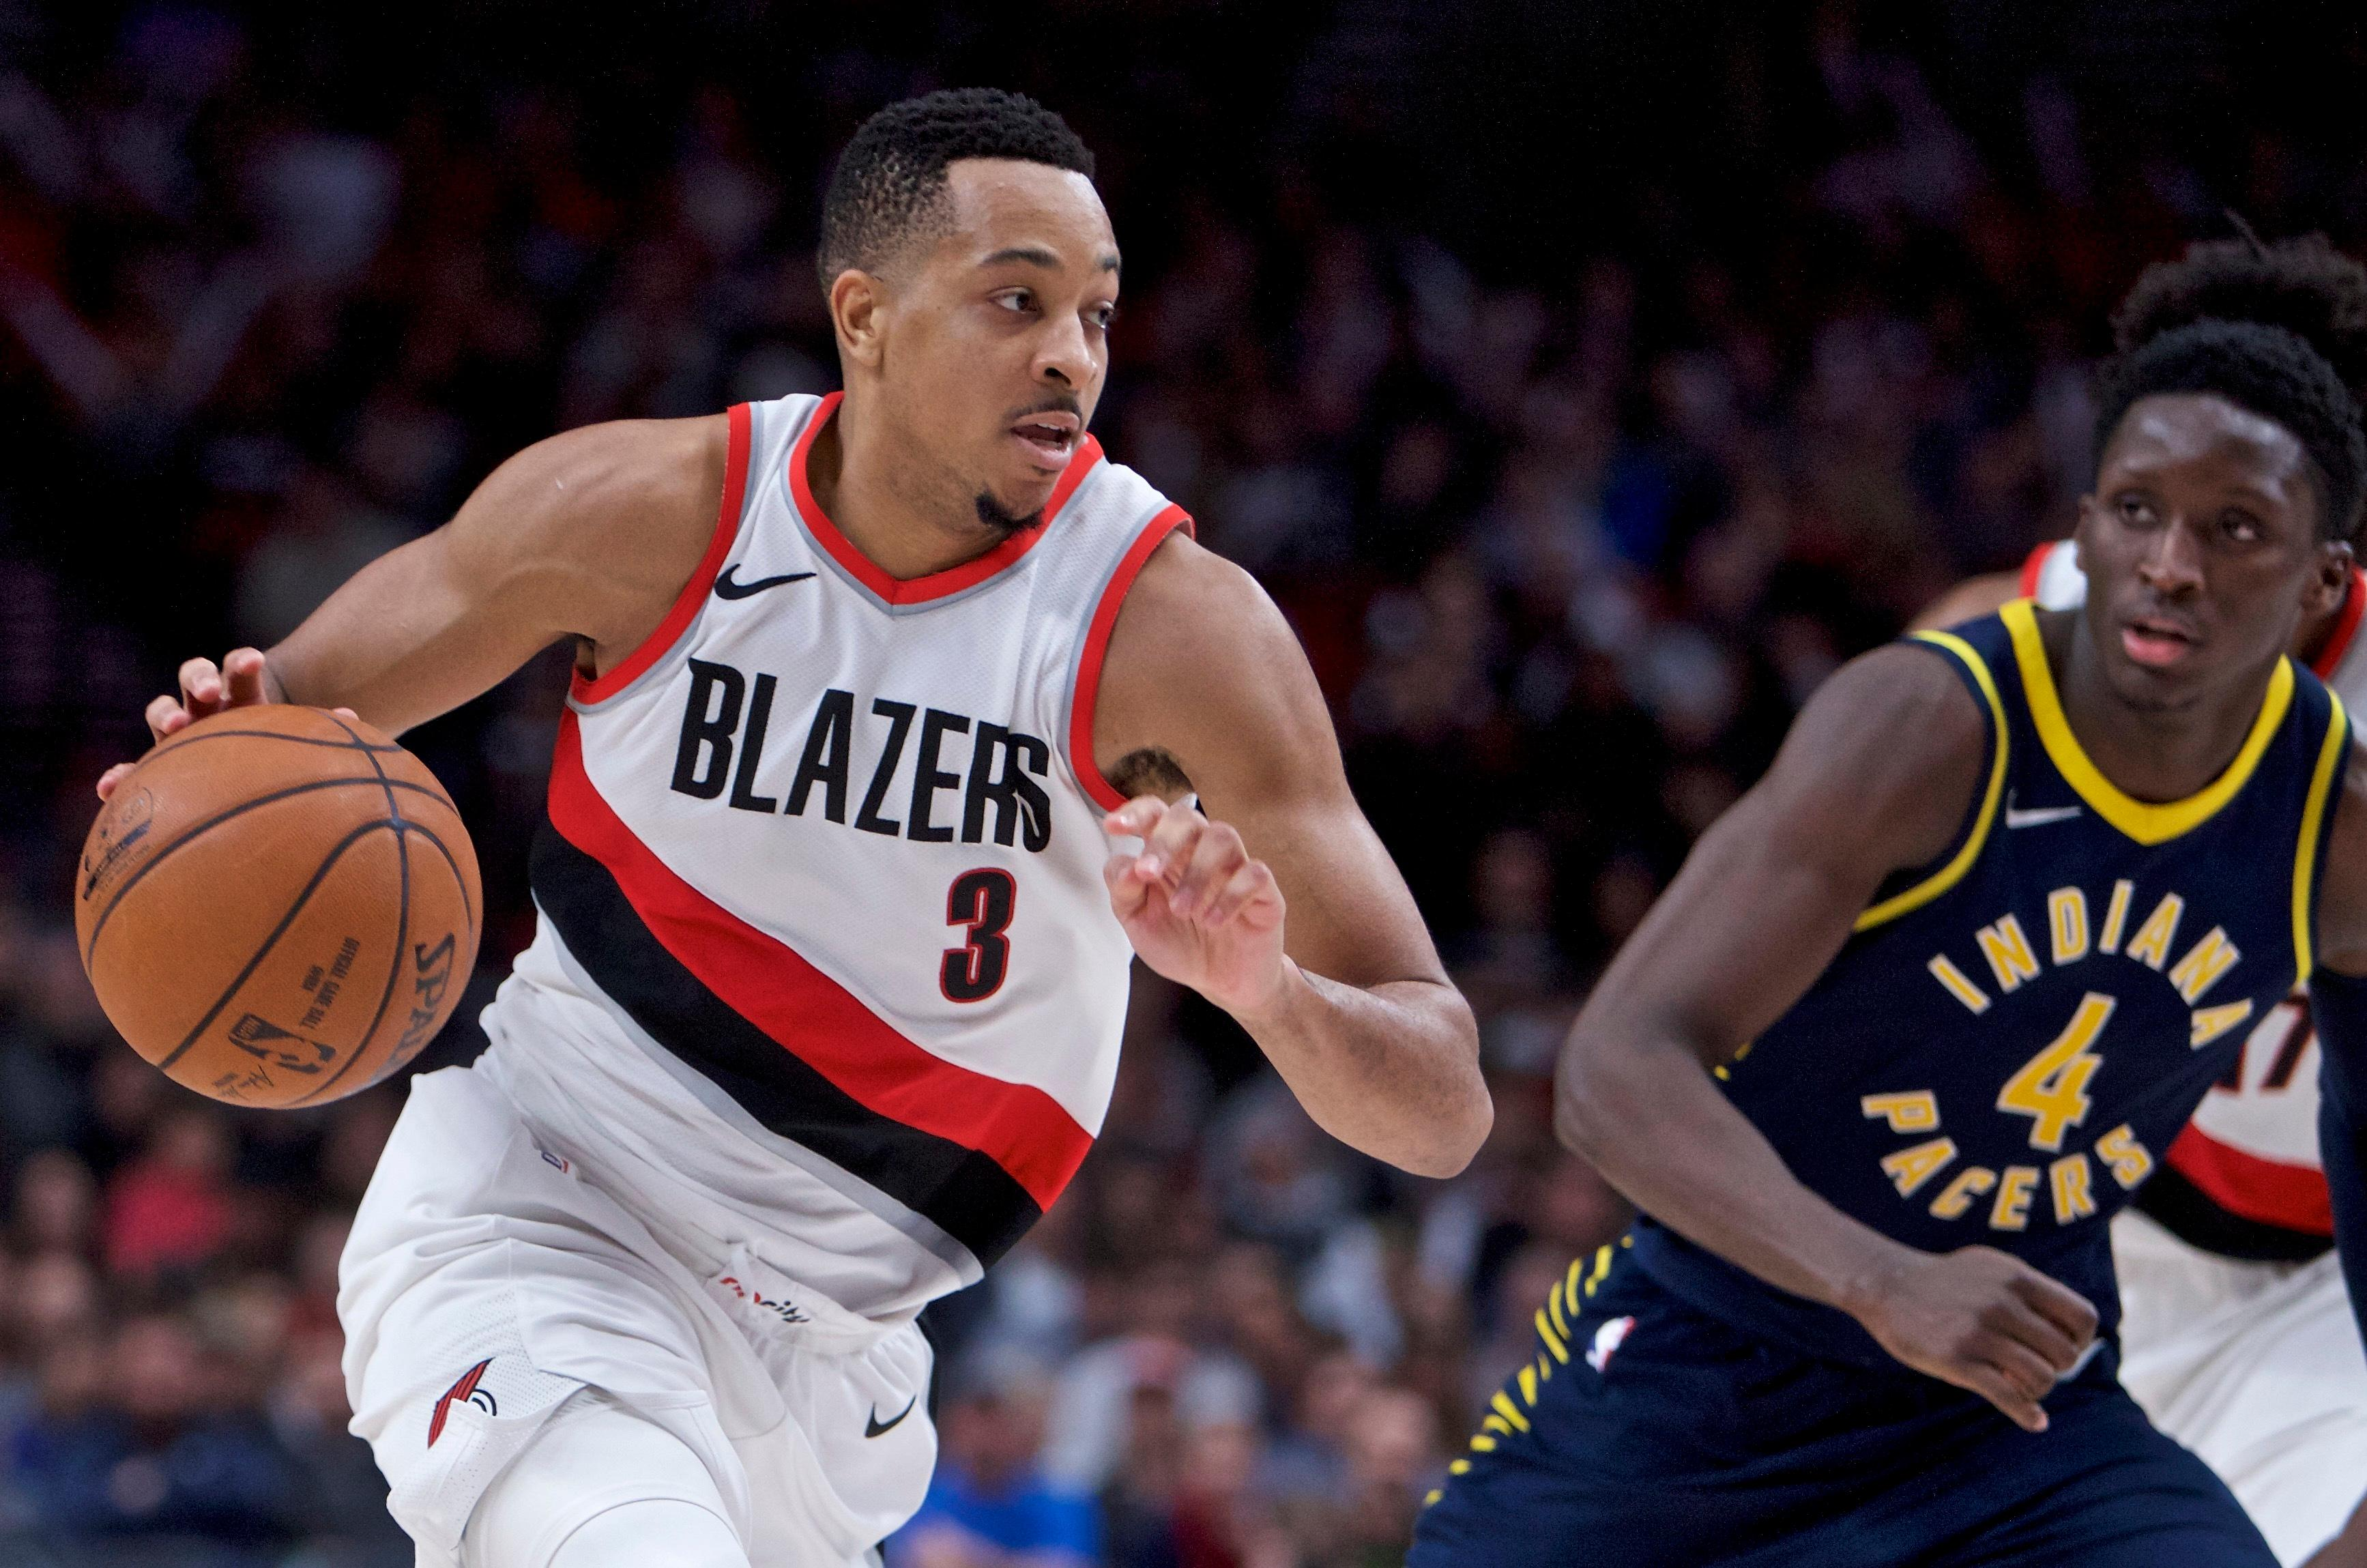 Portland Trail Blazers guard CJ McCollum drives as Indiana Pacers guard Victor Oladipo defends during the second half of an NBA basketball game in Portland, Ore., Thursday, Jan. 18, 2018. The Trail Blazers won 100-86. (AP Photo/Craig Mitchelldyer)